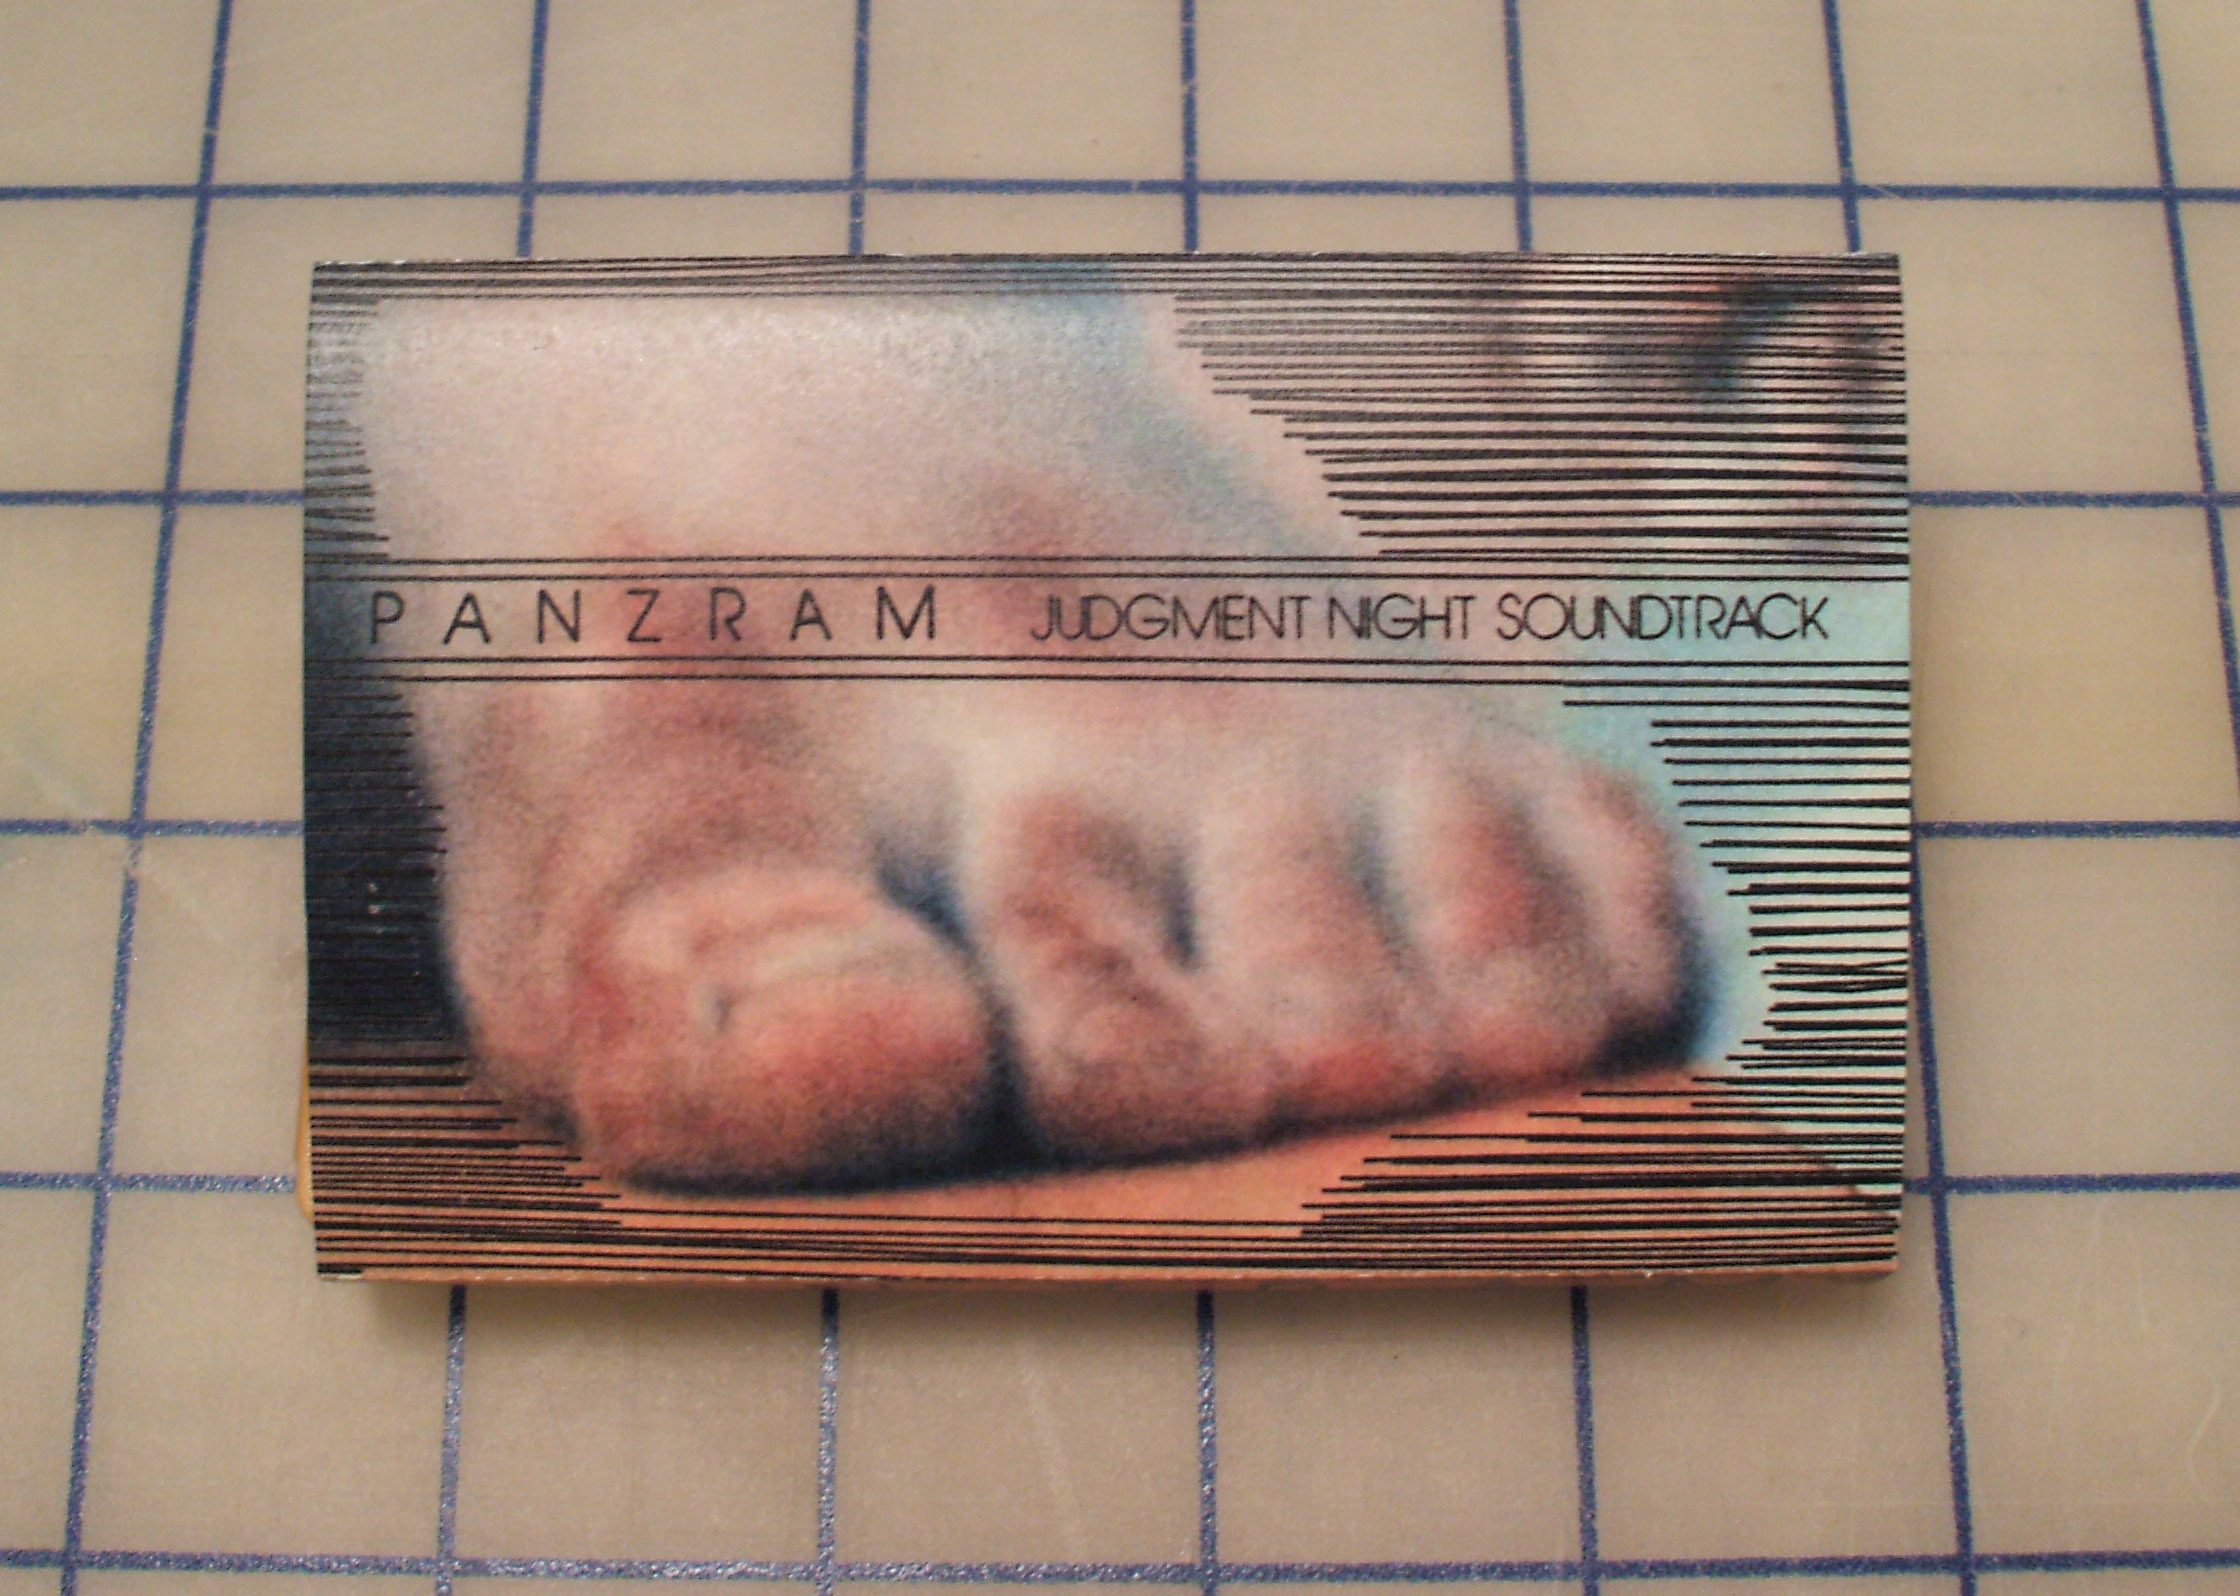 PANZRAM - Judgment Night Soundtrack - Tape from Seven Inches To Freedom Zine